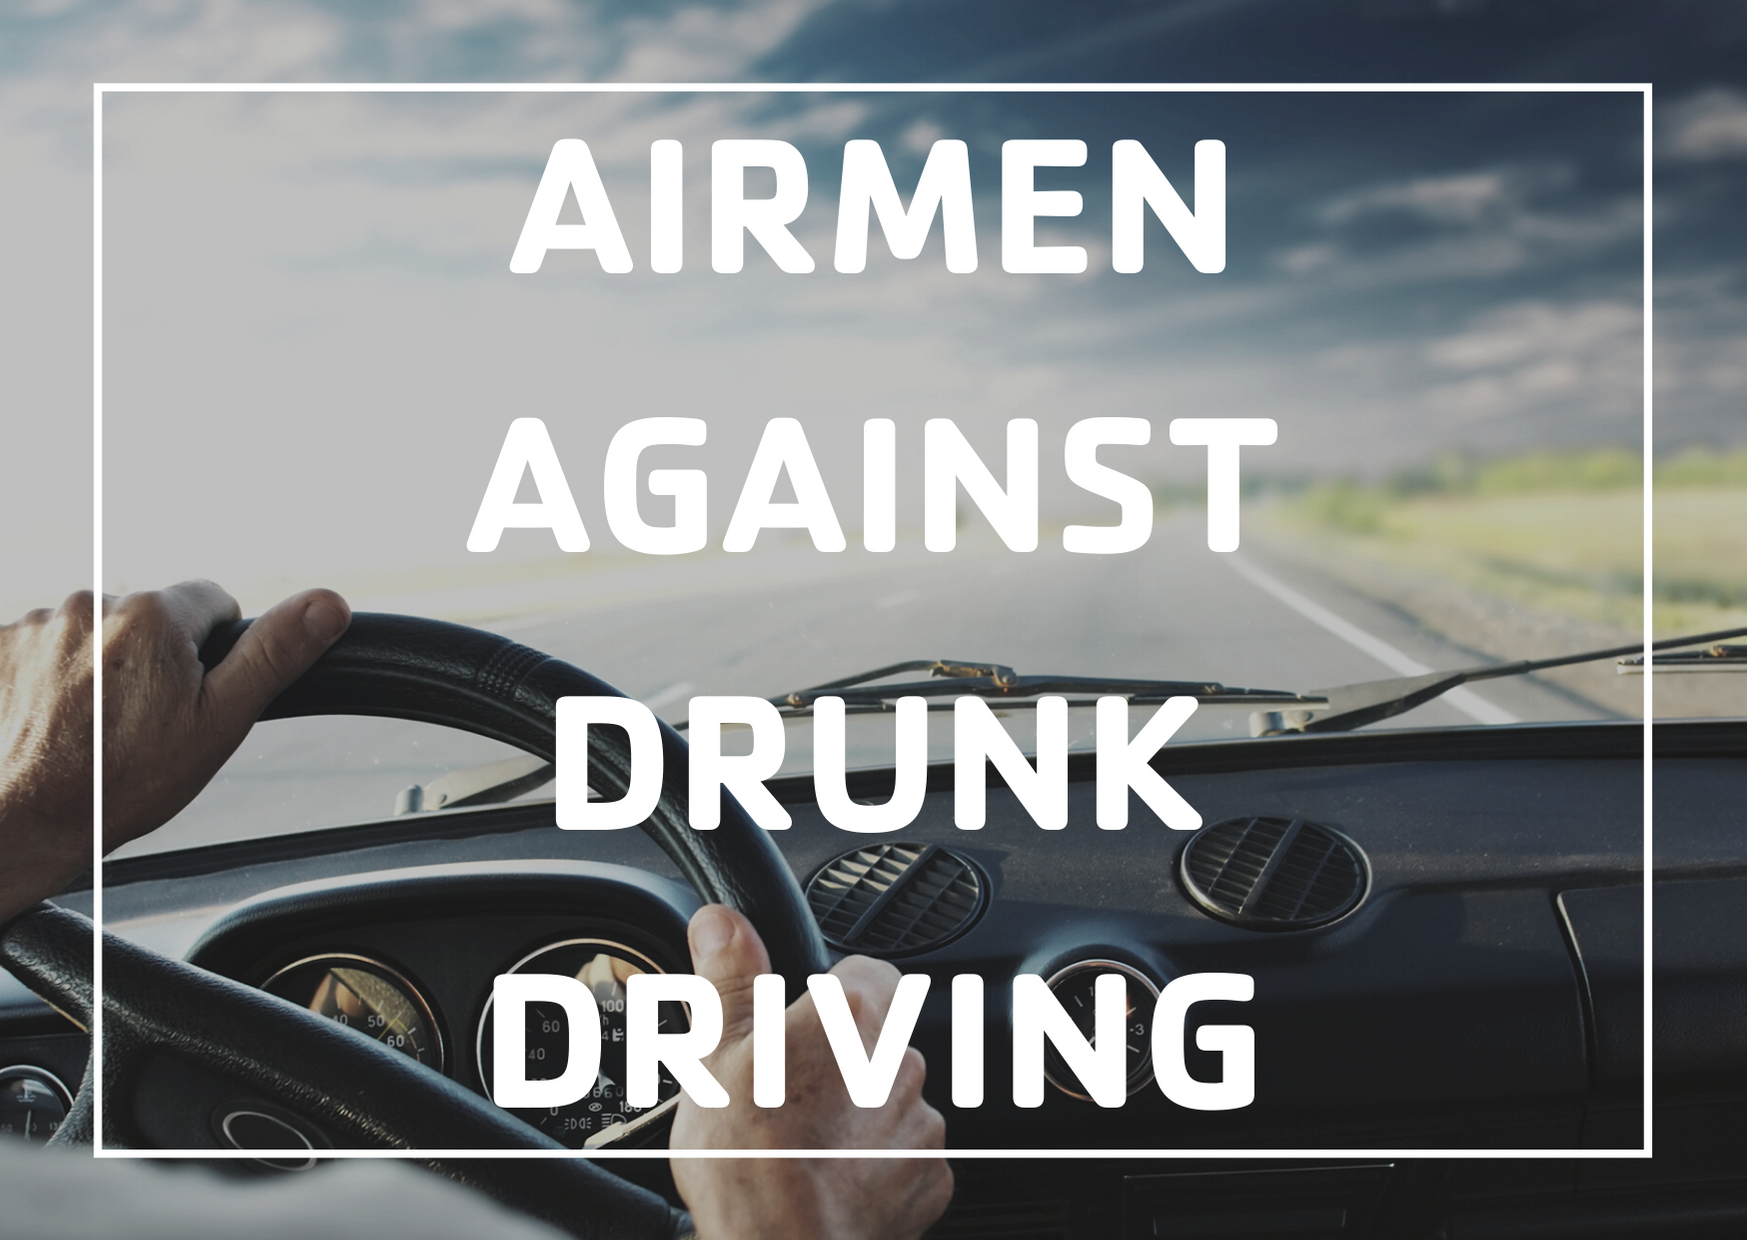 airmen against drunk driving image of man with hands on steering wheel